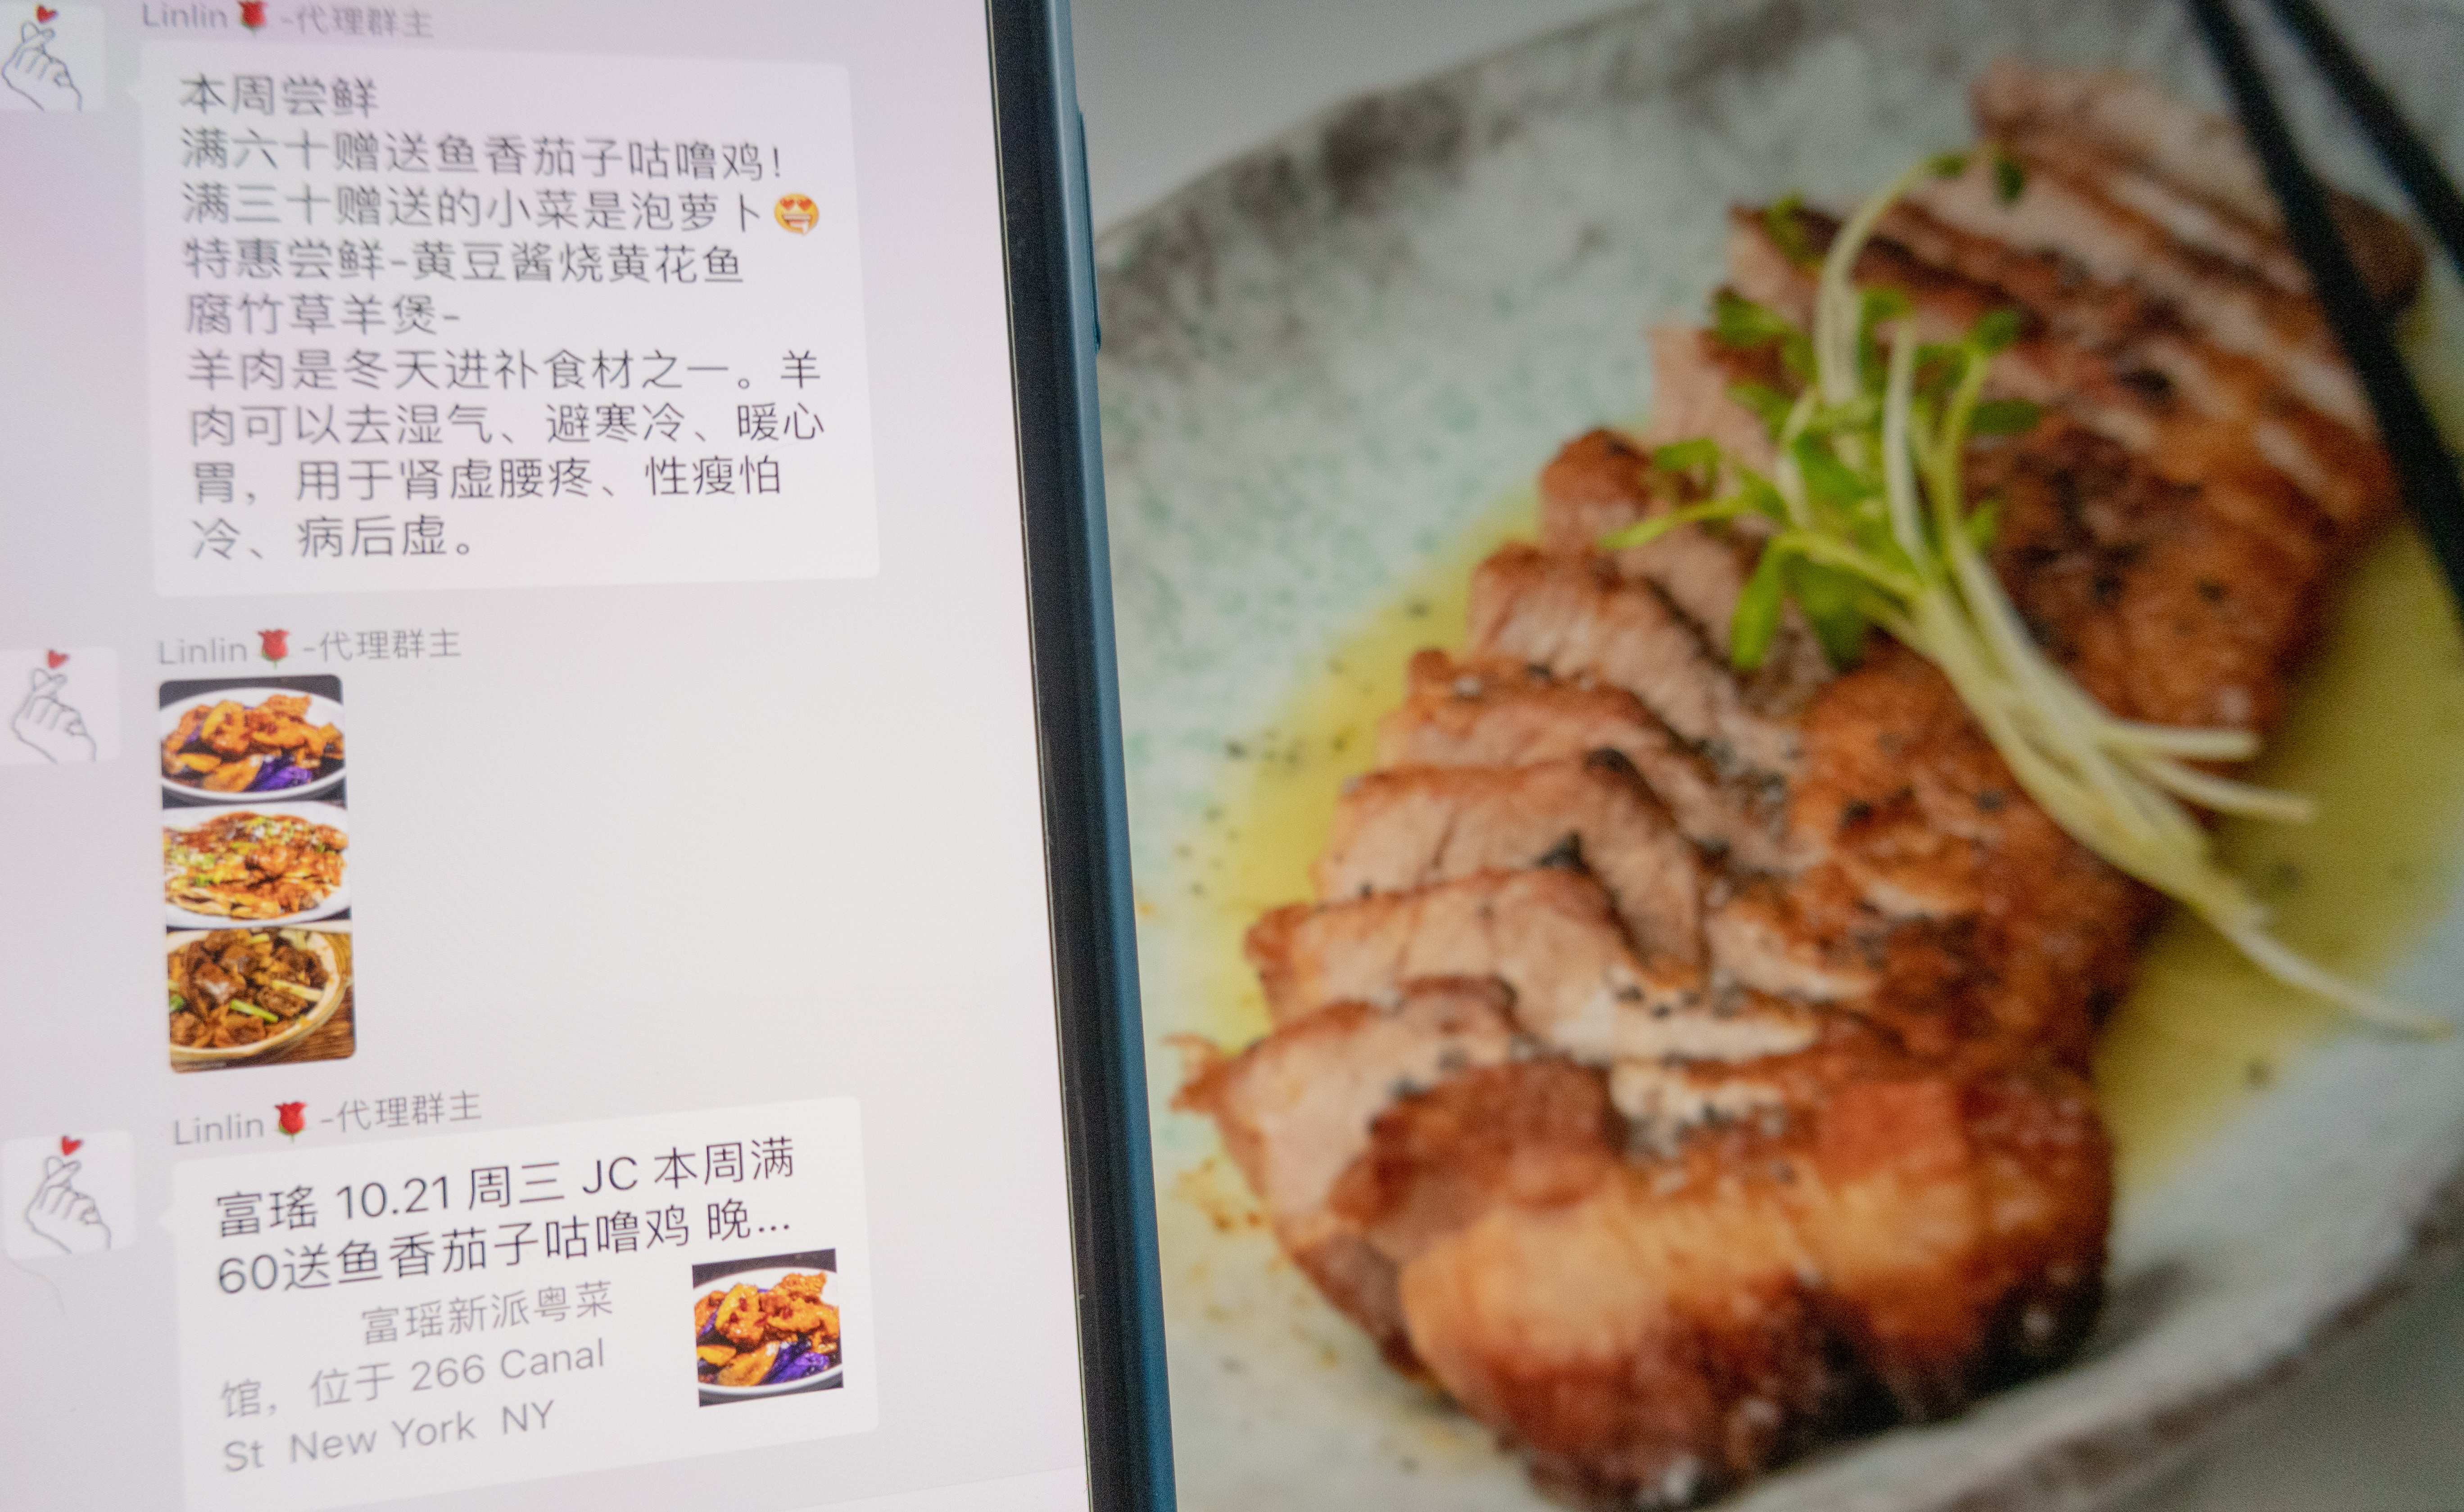 A photo of an app with chopsticks on the side and a computer screen showing food